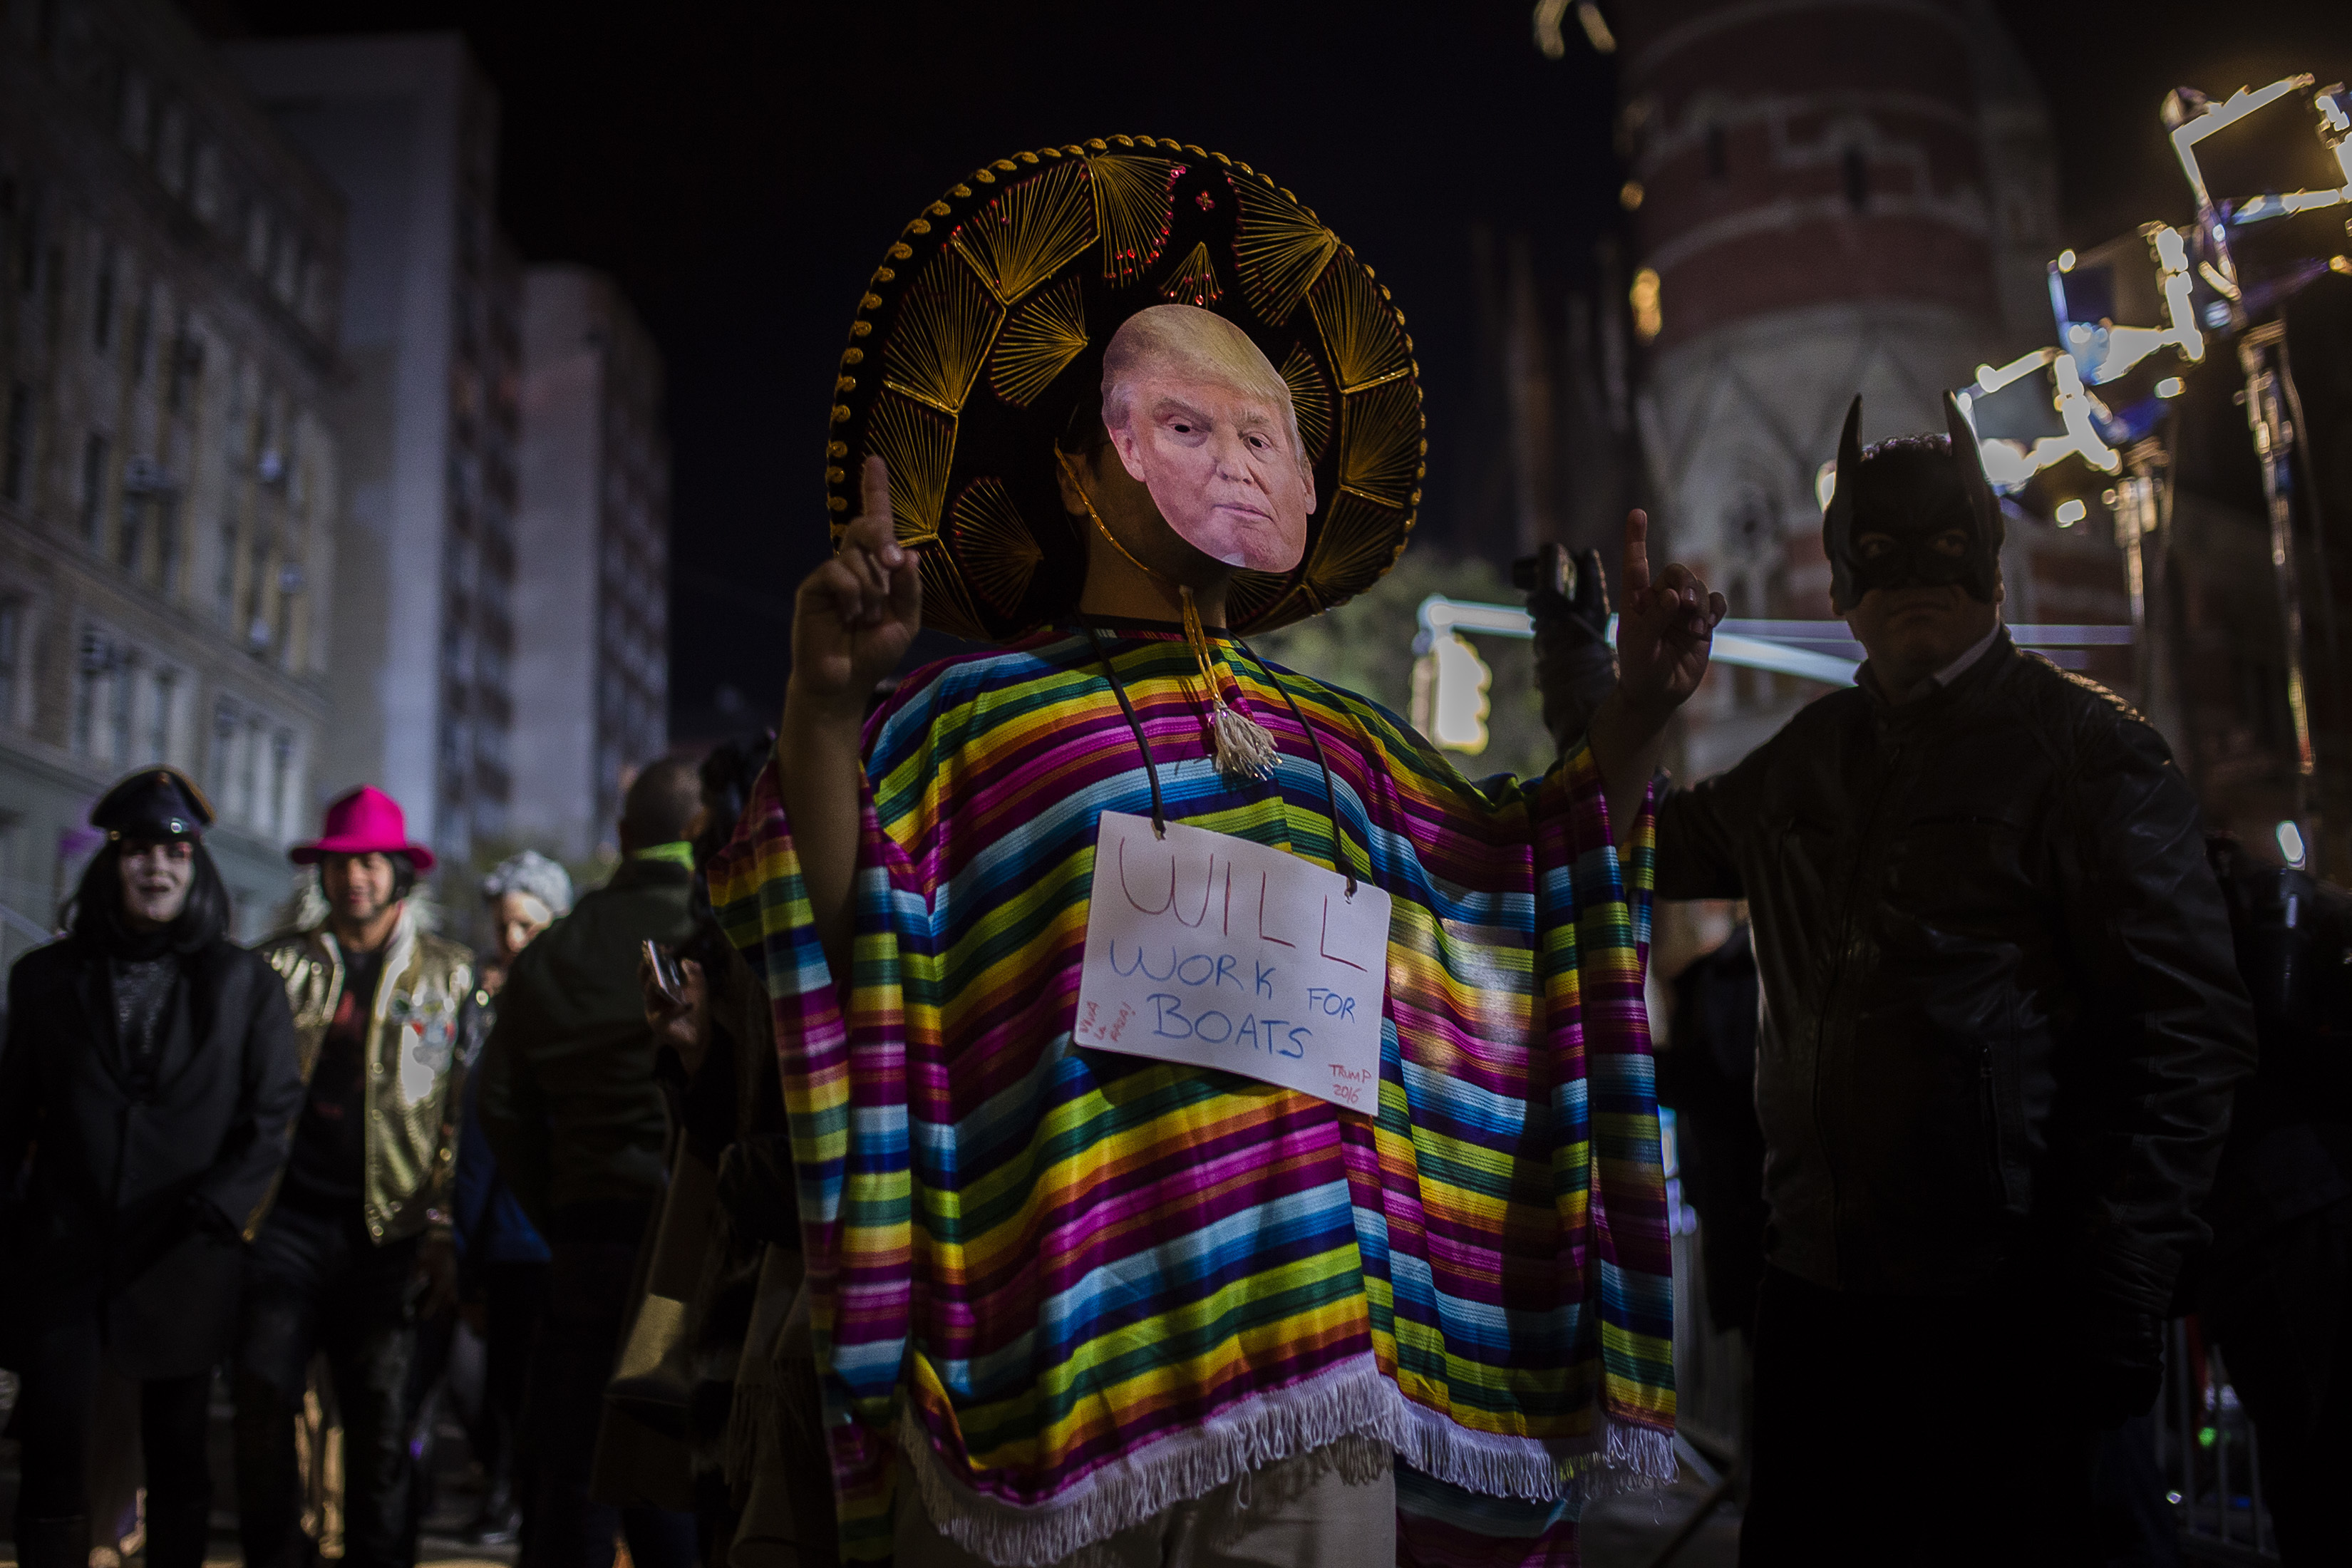 "<div class=""meta image-caption""><div class=""origin-logo origin-image none""><span>none</span></div><span class=""caption-text"">A reveler wearing a Donald Trump mask marches during the Greenwich Village Halloween Parade in New York, Monday, Oct. 31, 2016. (AP Photo/Andres Kudacki)</span></div>"